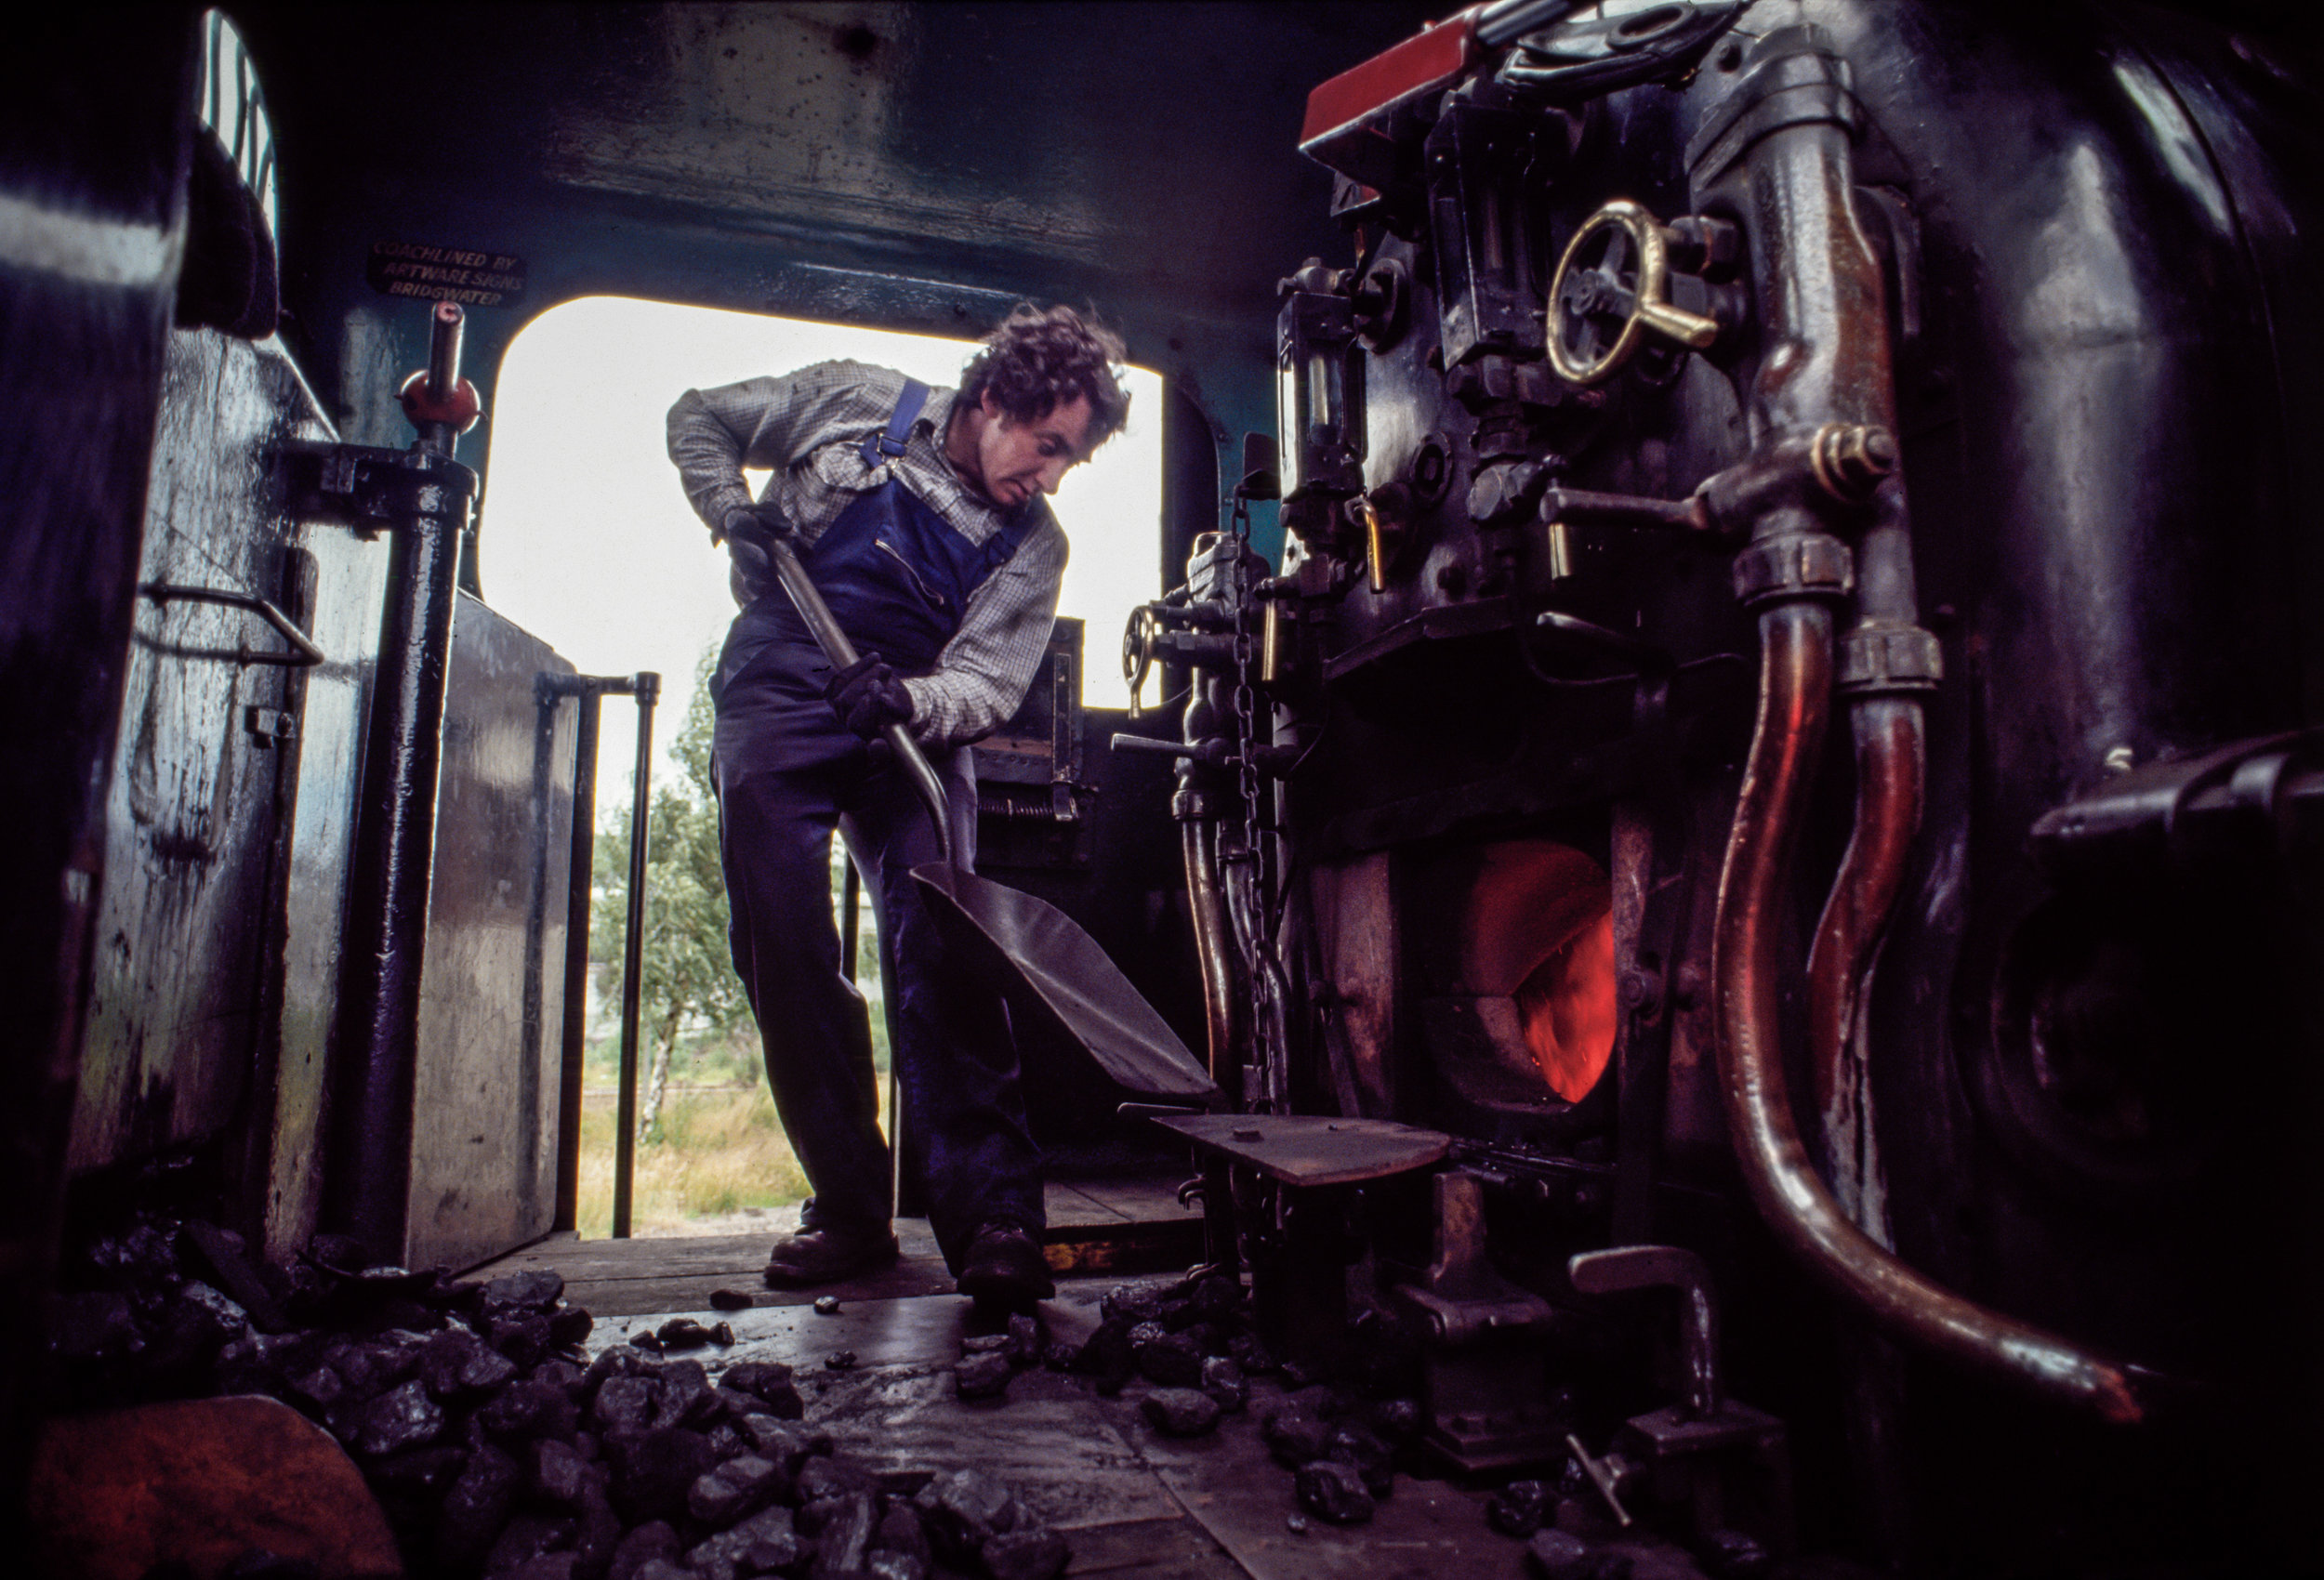 A fireman for the Strathspey Railway shovels coal into the boiler of a locomotive en route from Boat of Garden to Avimore in Scotland